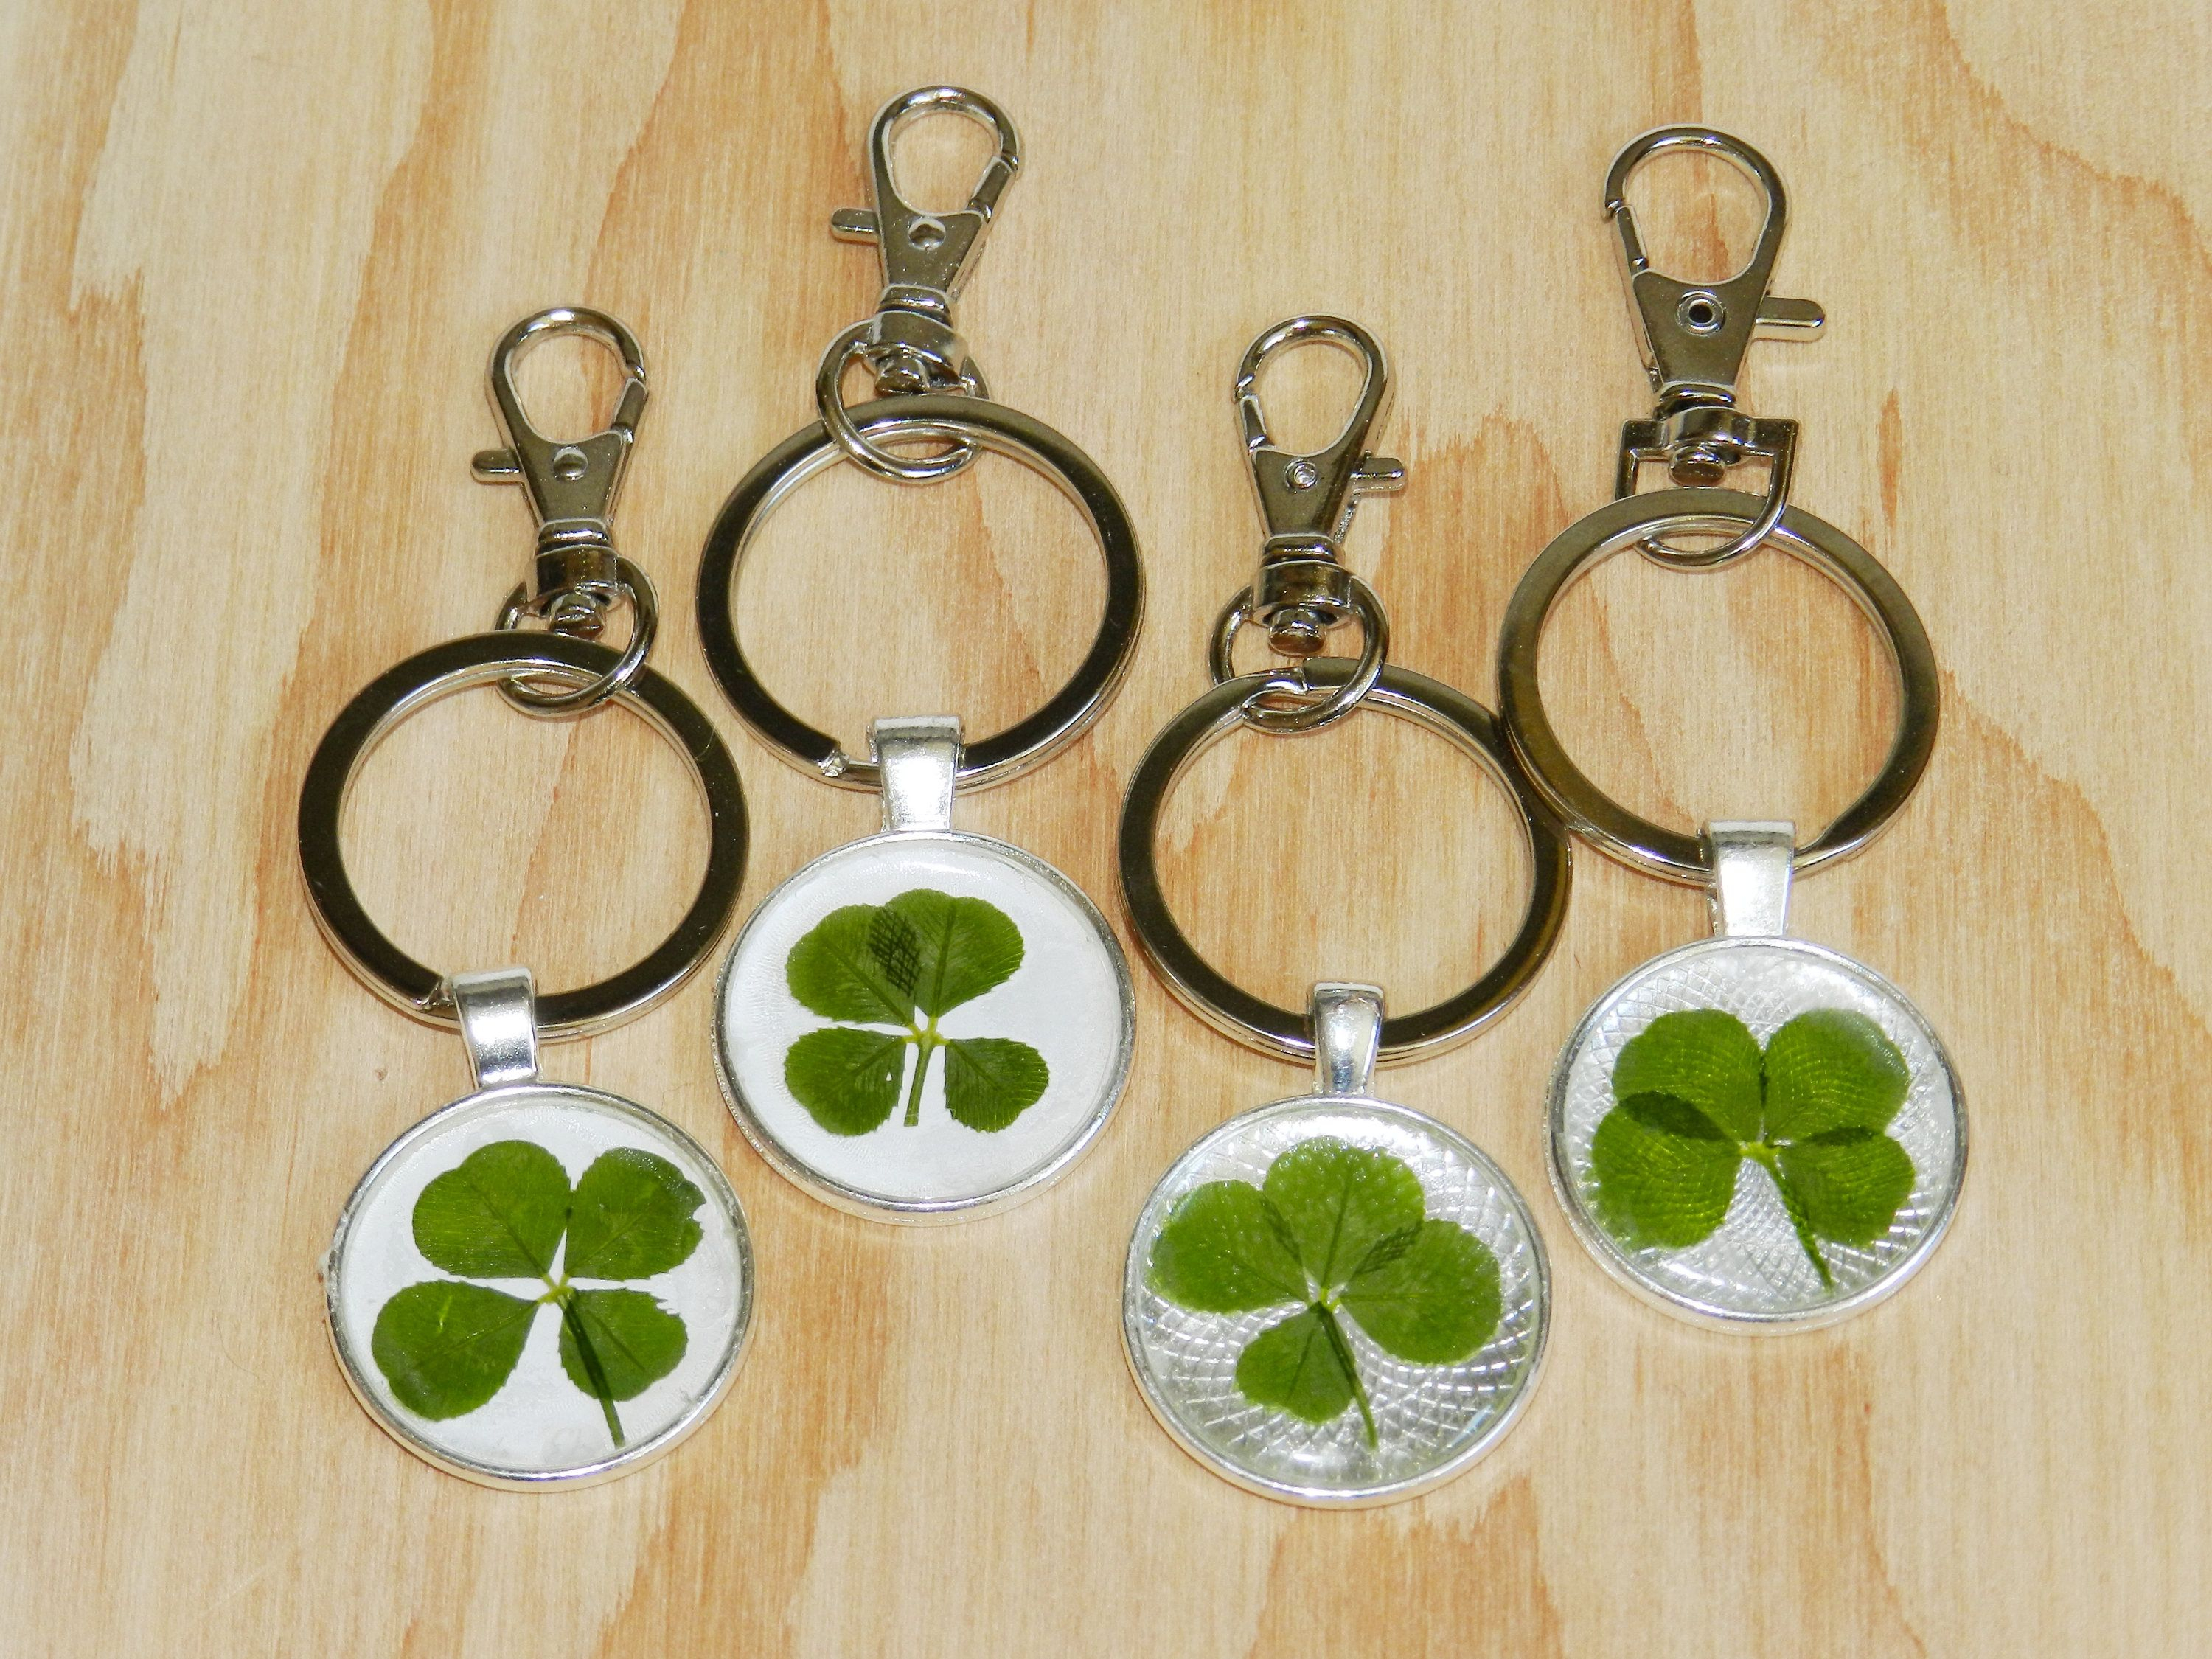 Four Leaf Clover Keychain, Lucky Key Ring, Real Four Leaf Clover Throughout Most Up To Date Lucky Four Leaf Clover Open Rings (View 6 of 25)